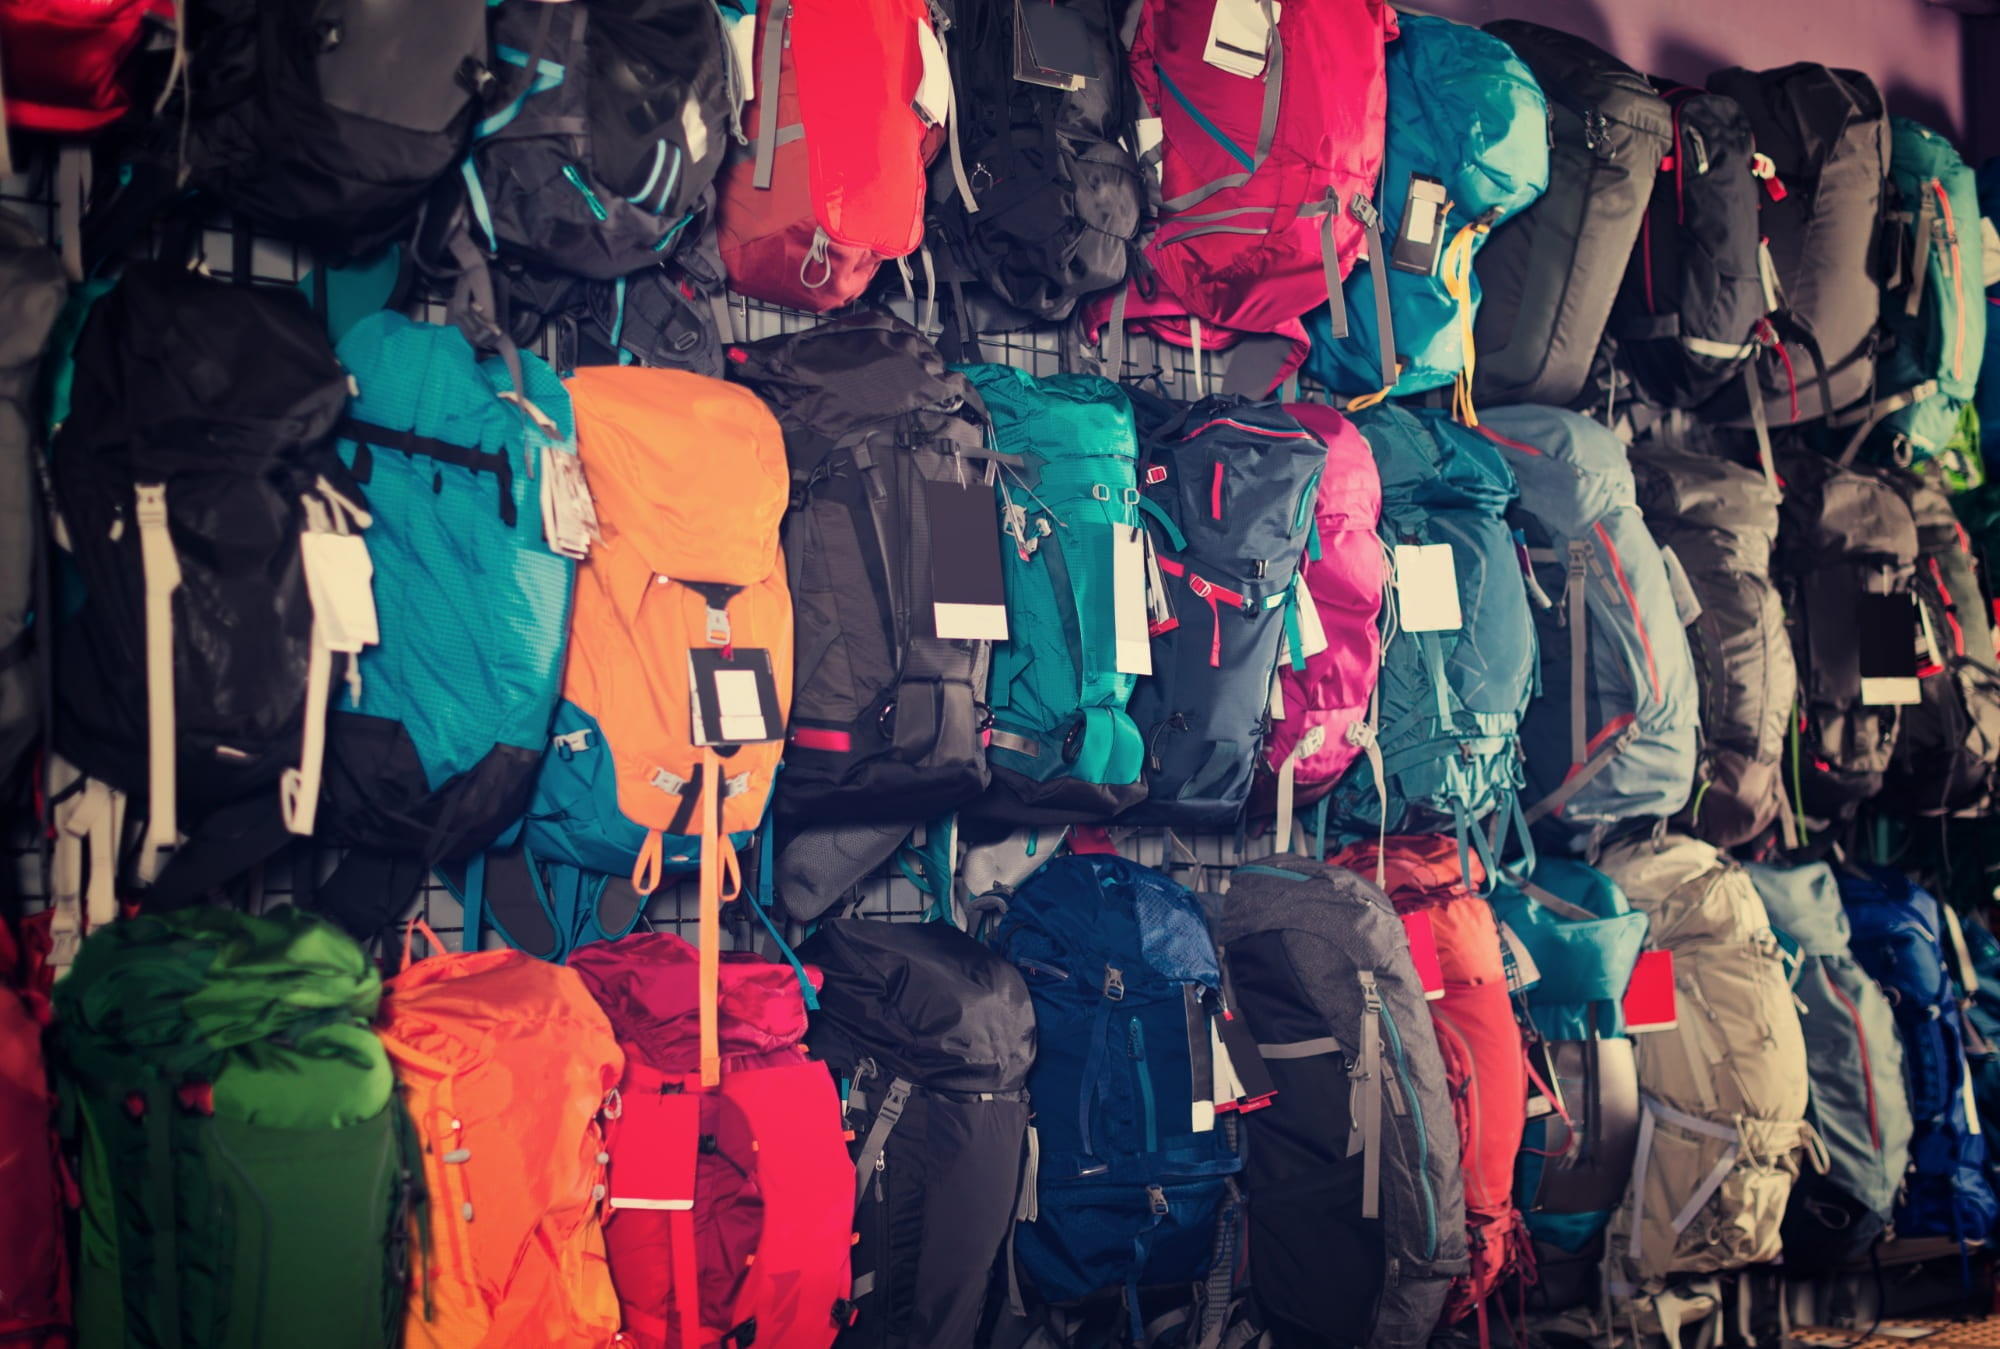 Rows of hanging backpacks in a camping gear rental store